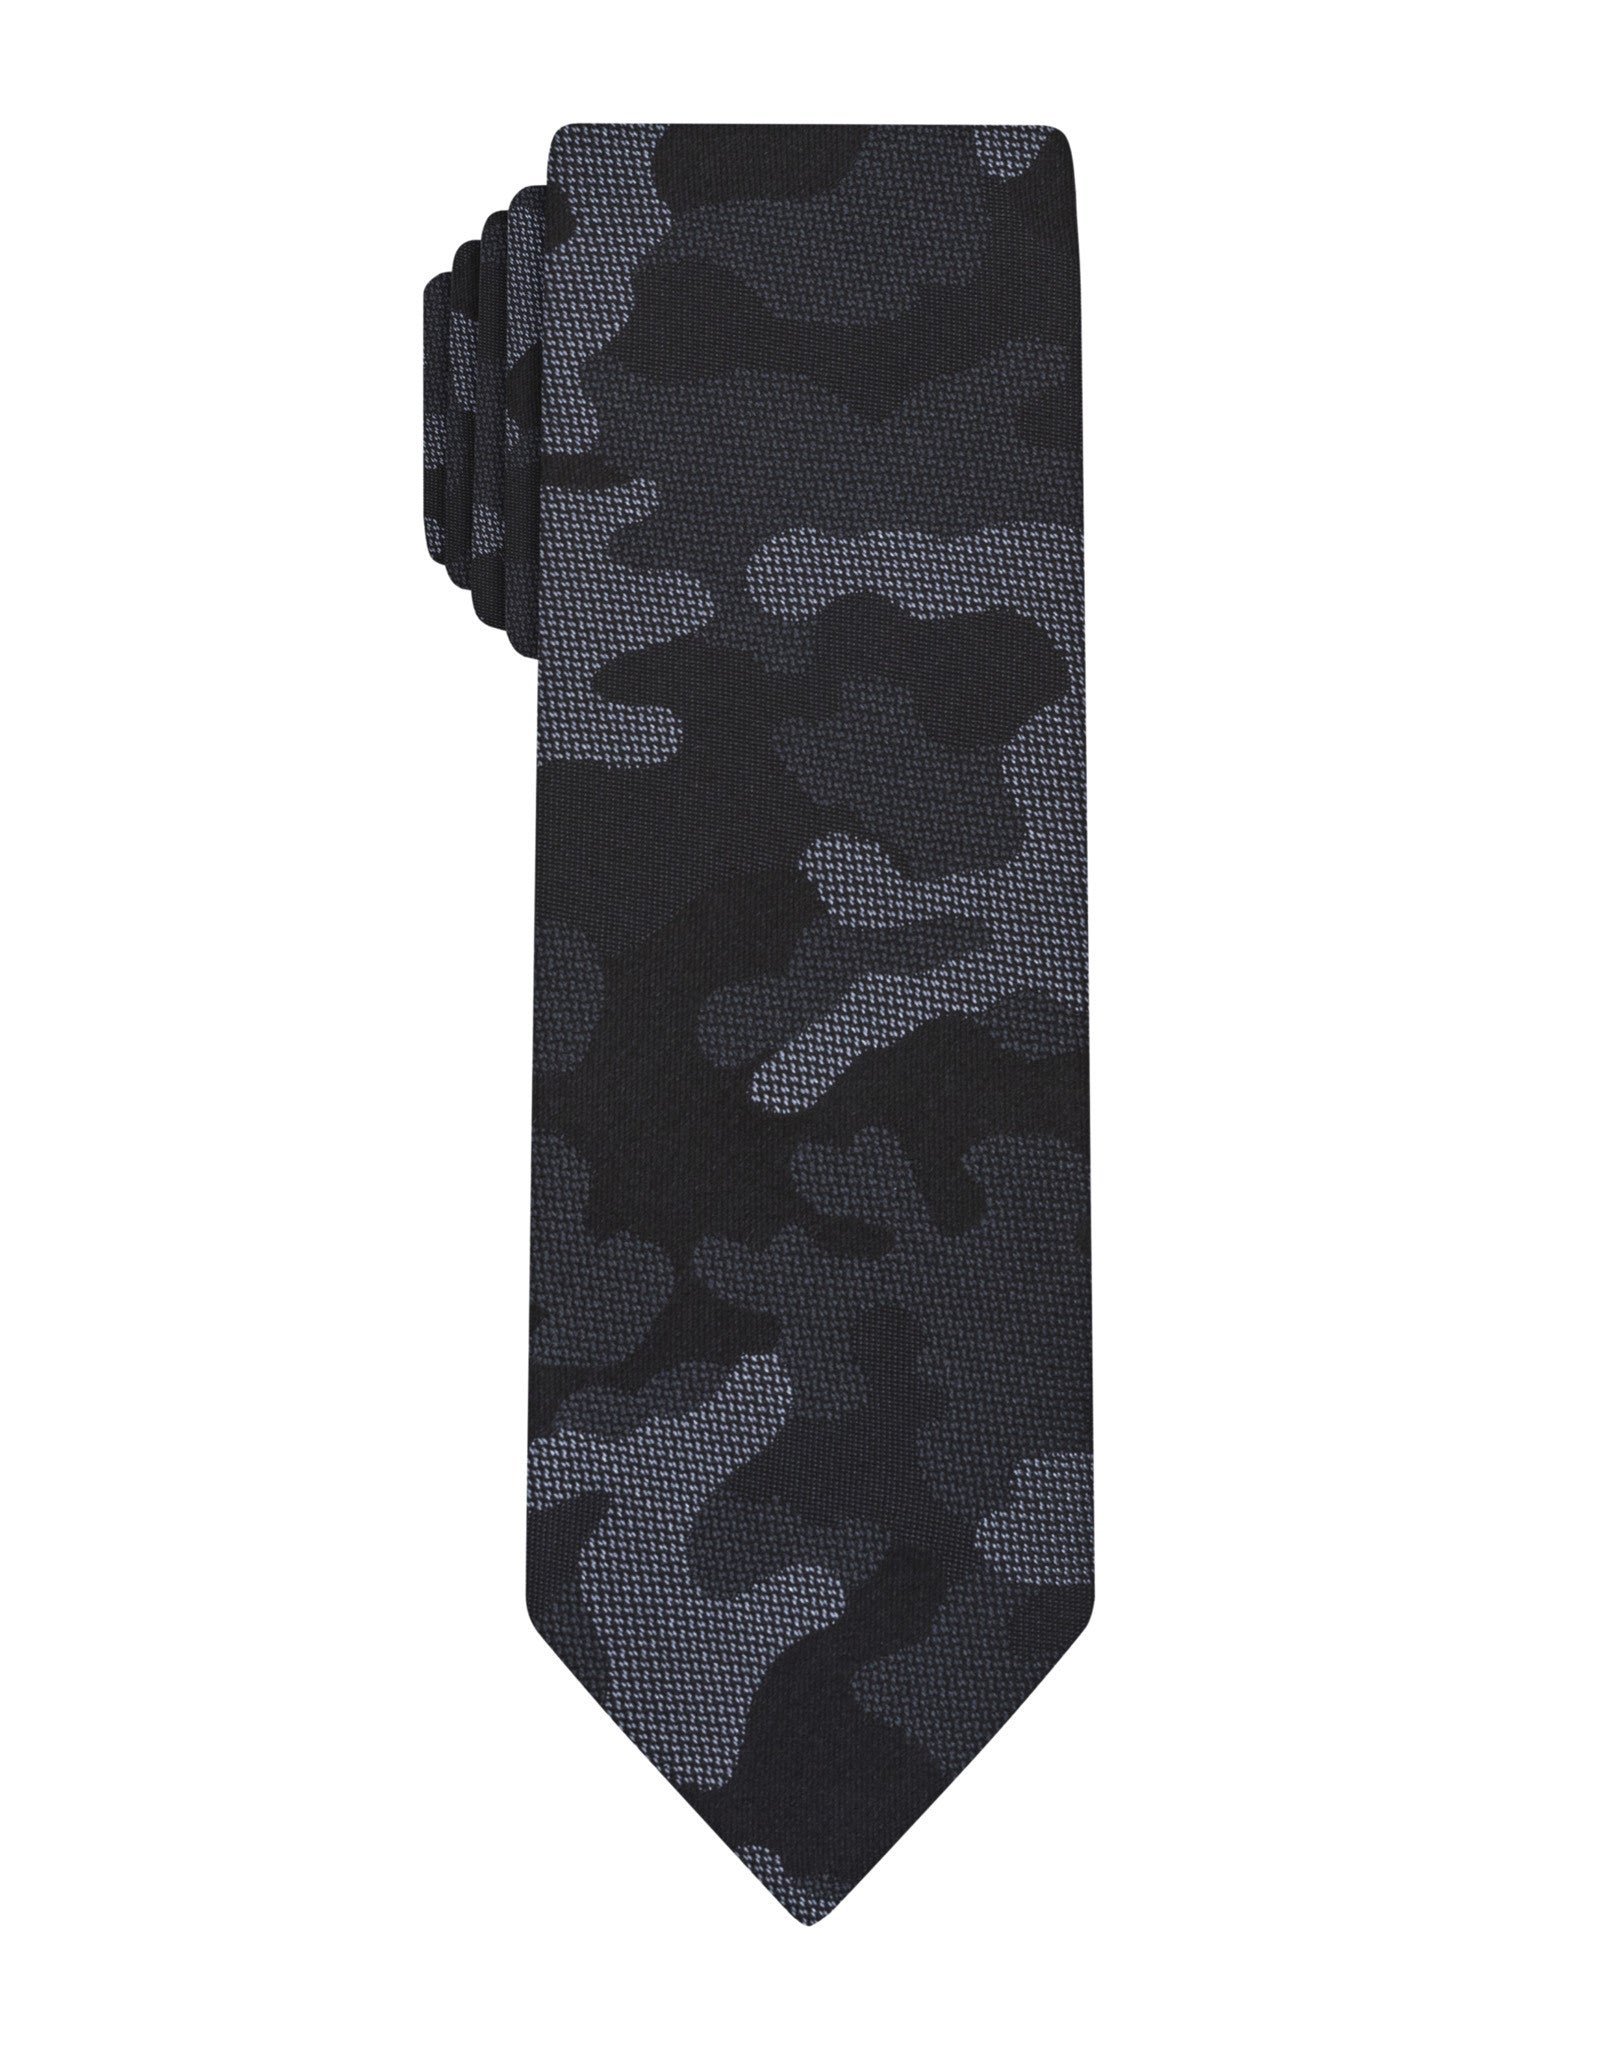 Black Woven Camouflage Skinny Tie